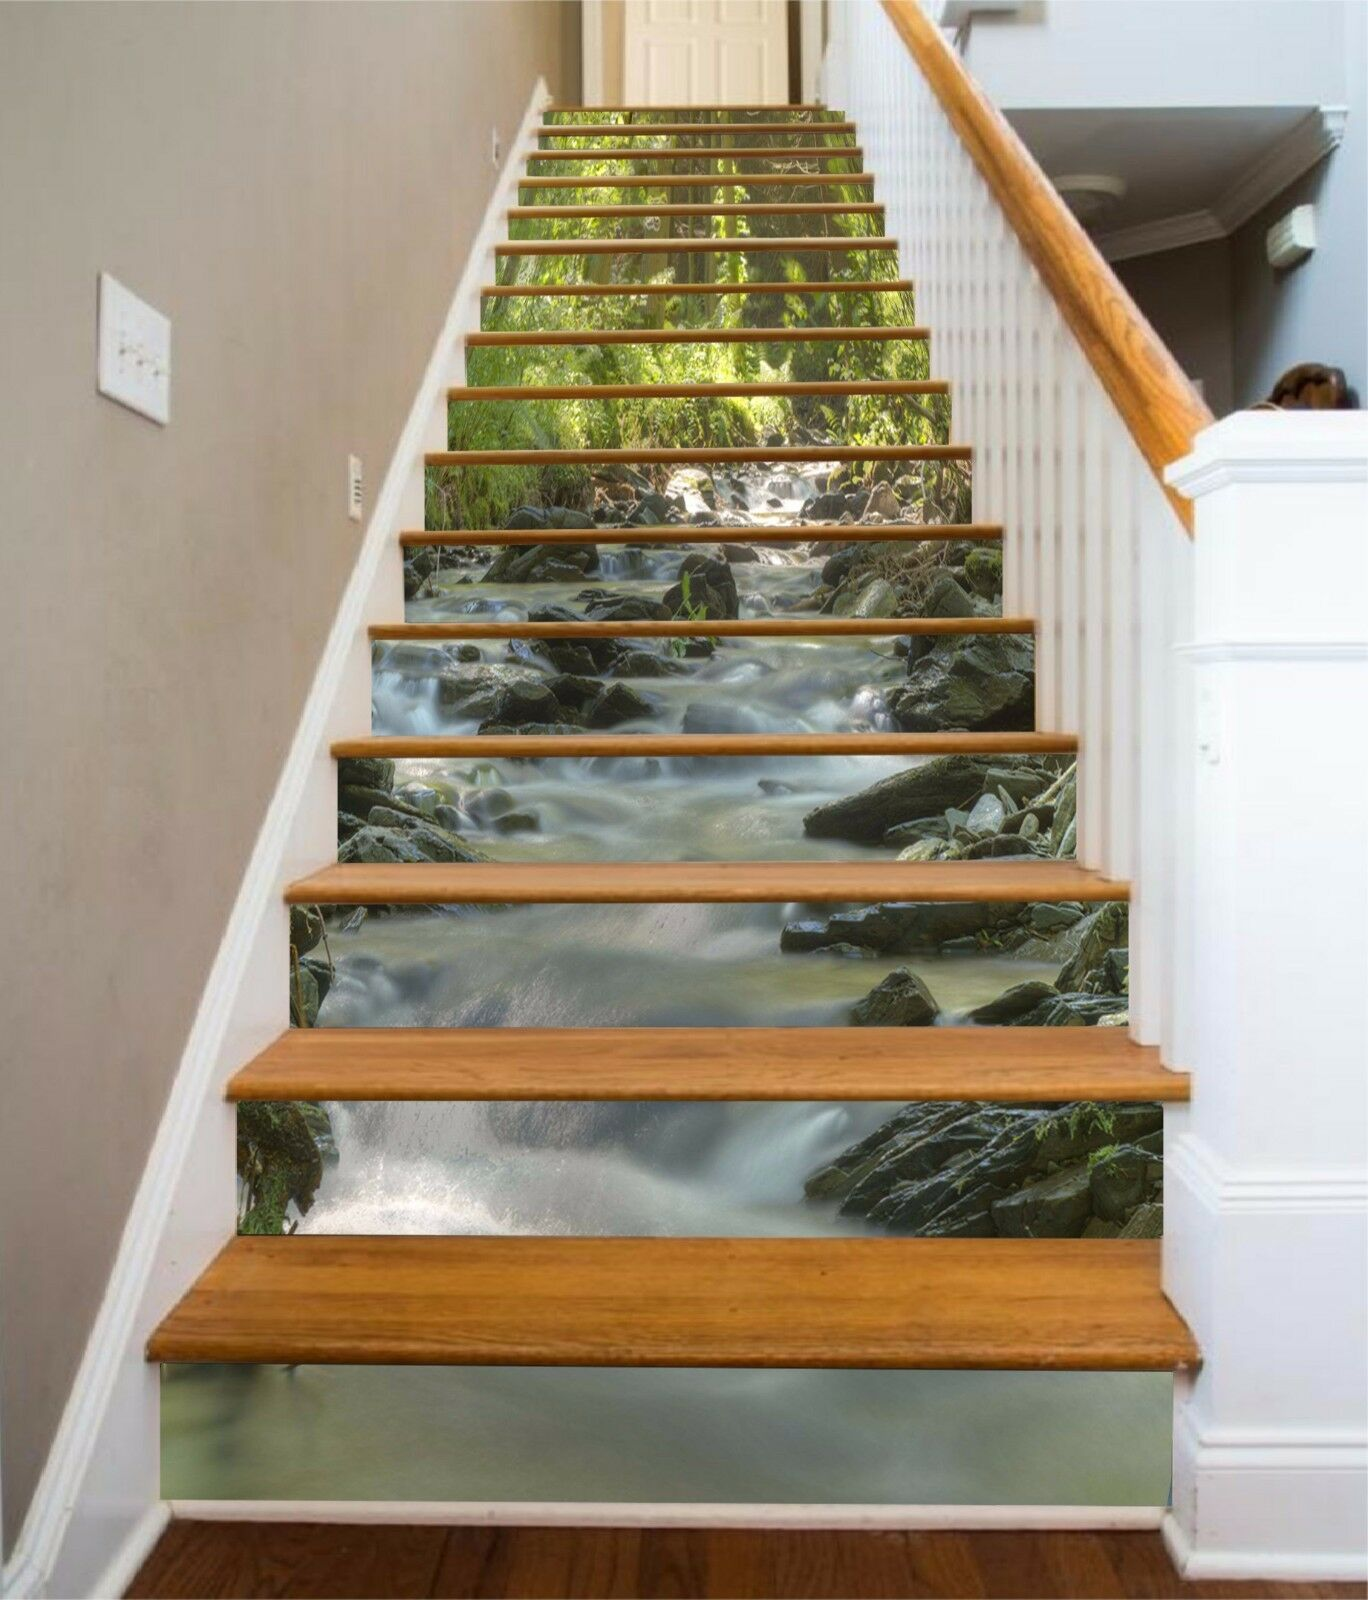 3D Forest River 769 Stair Risers Decoration Photo Mural Vinyl Decal WandPapier AU